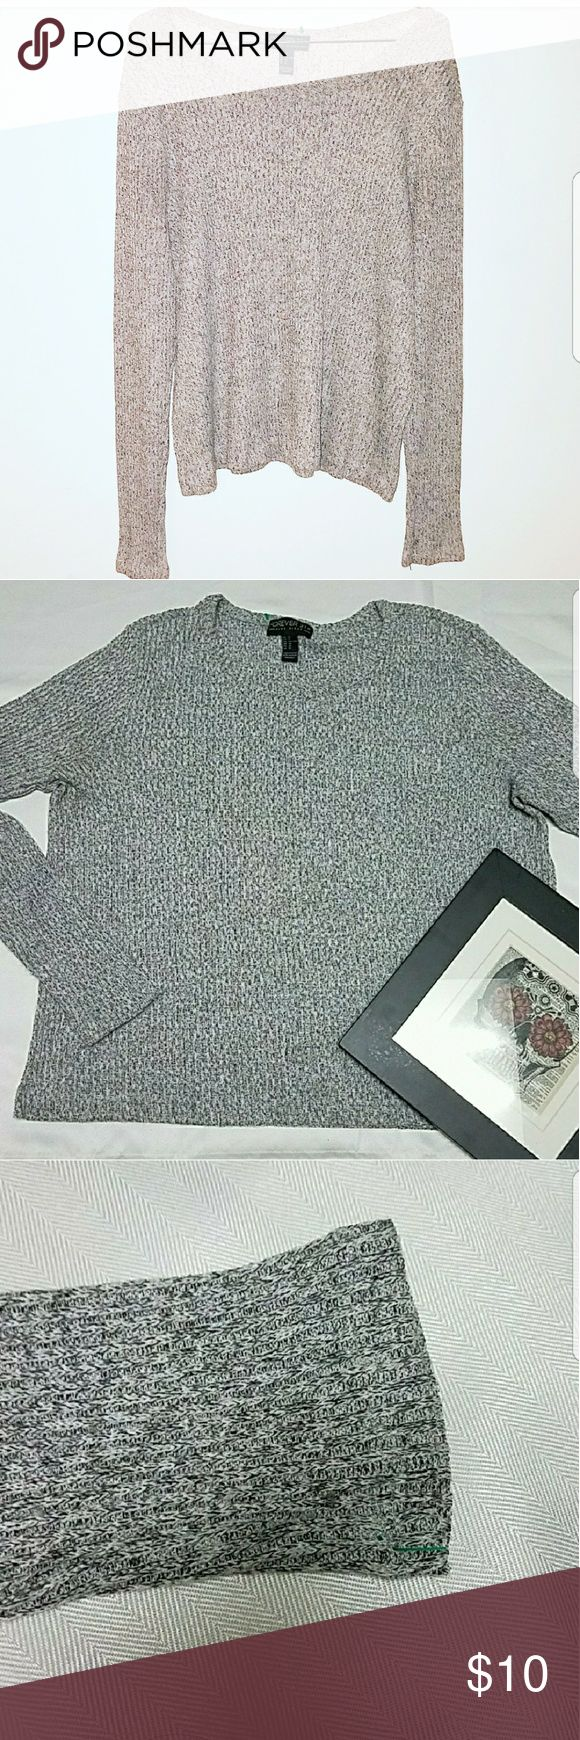 Forever 21 Plus Lightweight Sweater Forever 21 Plus Lightweight Long Sleeve Grey Sweater.   Unnoticeable pull as pictured.    23 inches flat across chest 23 inches long Forever 21 Sweaters Crew & Scoop Necks